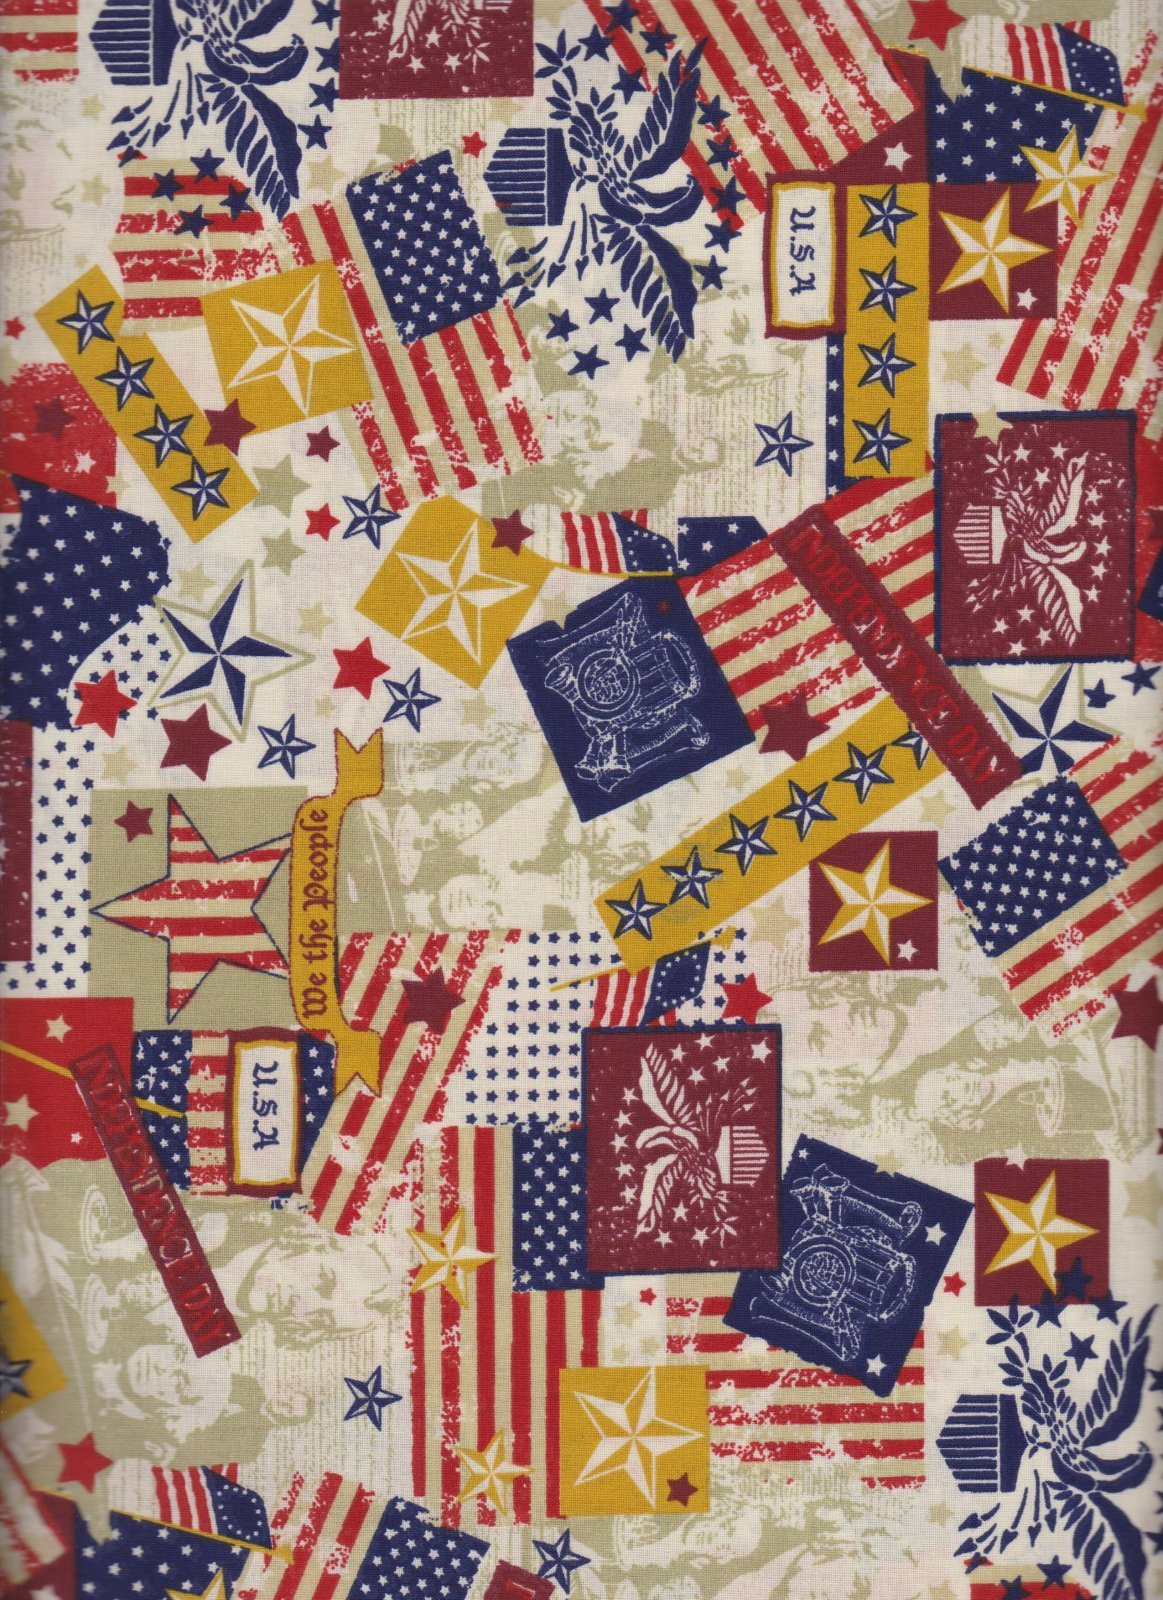 23838 Patriotic Stars, Bars and Flags